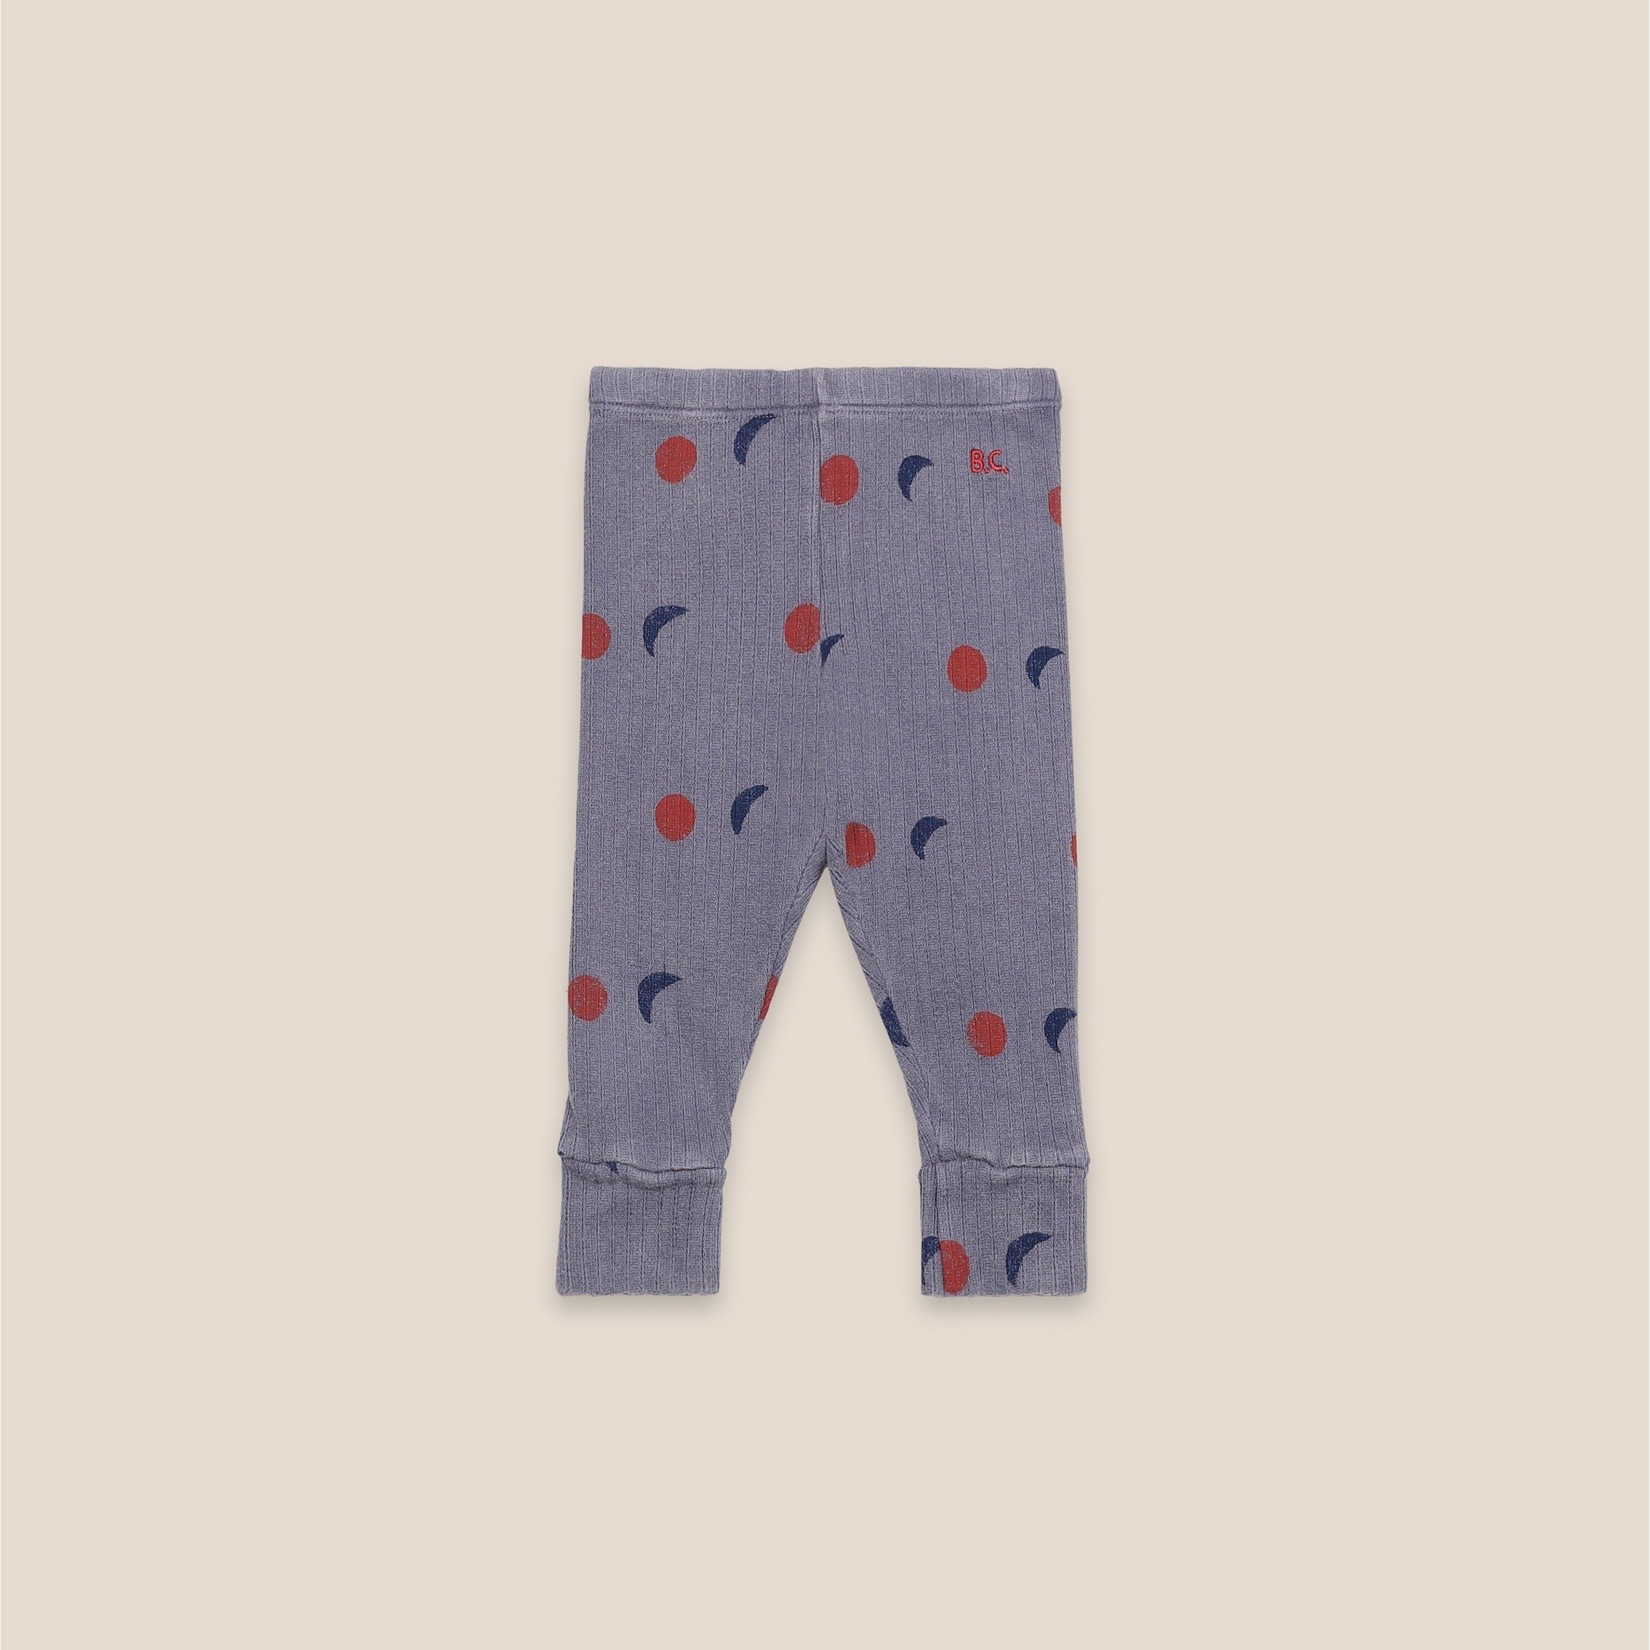 《BOBO CHOSES 2020AW》Night All Over Leggings / 6-36M